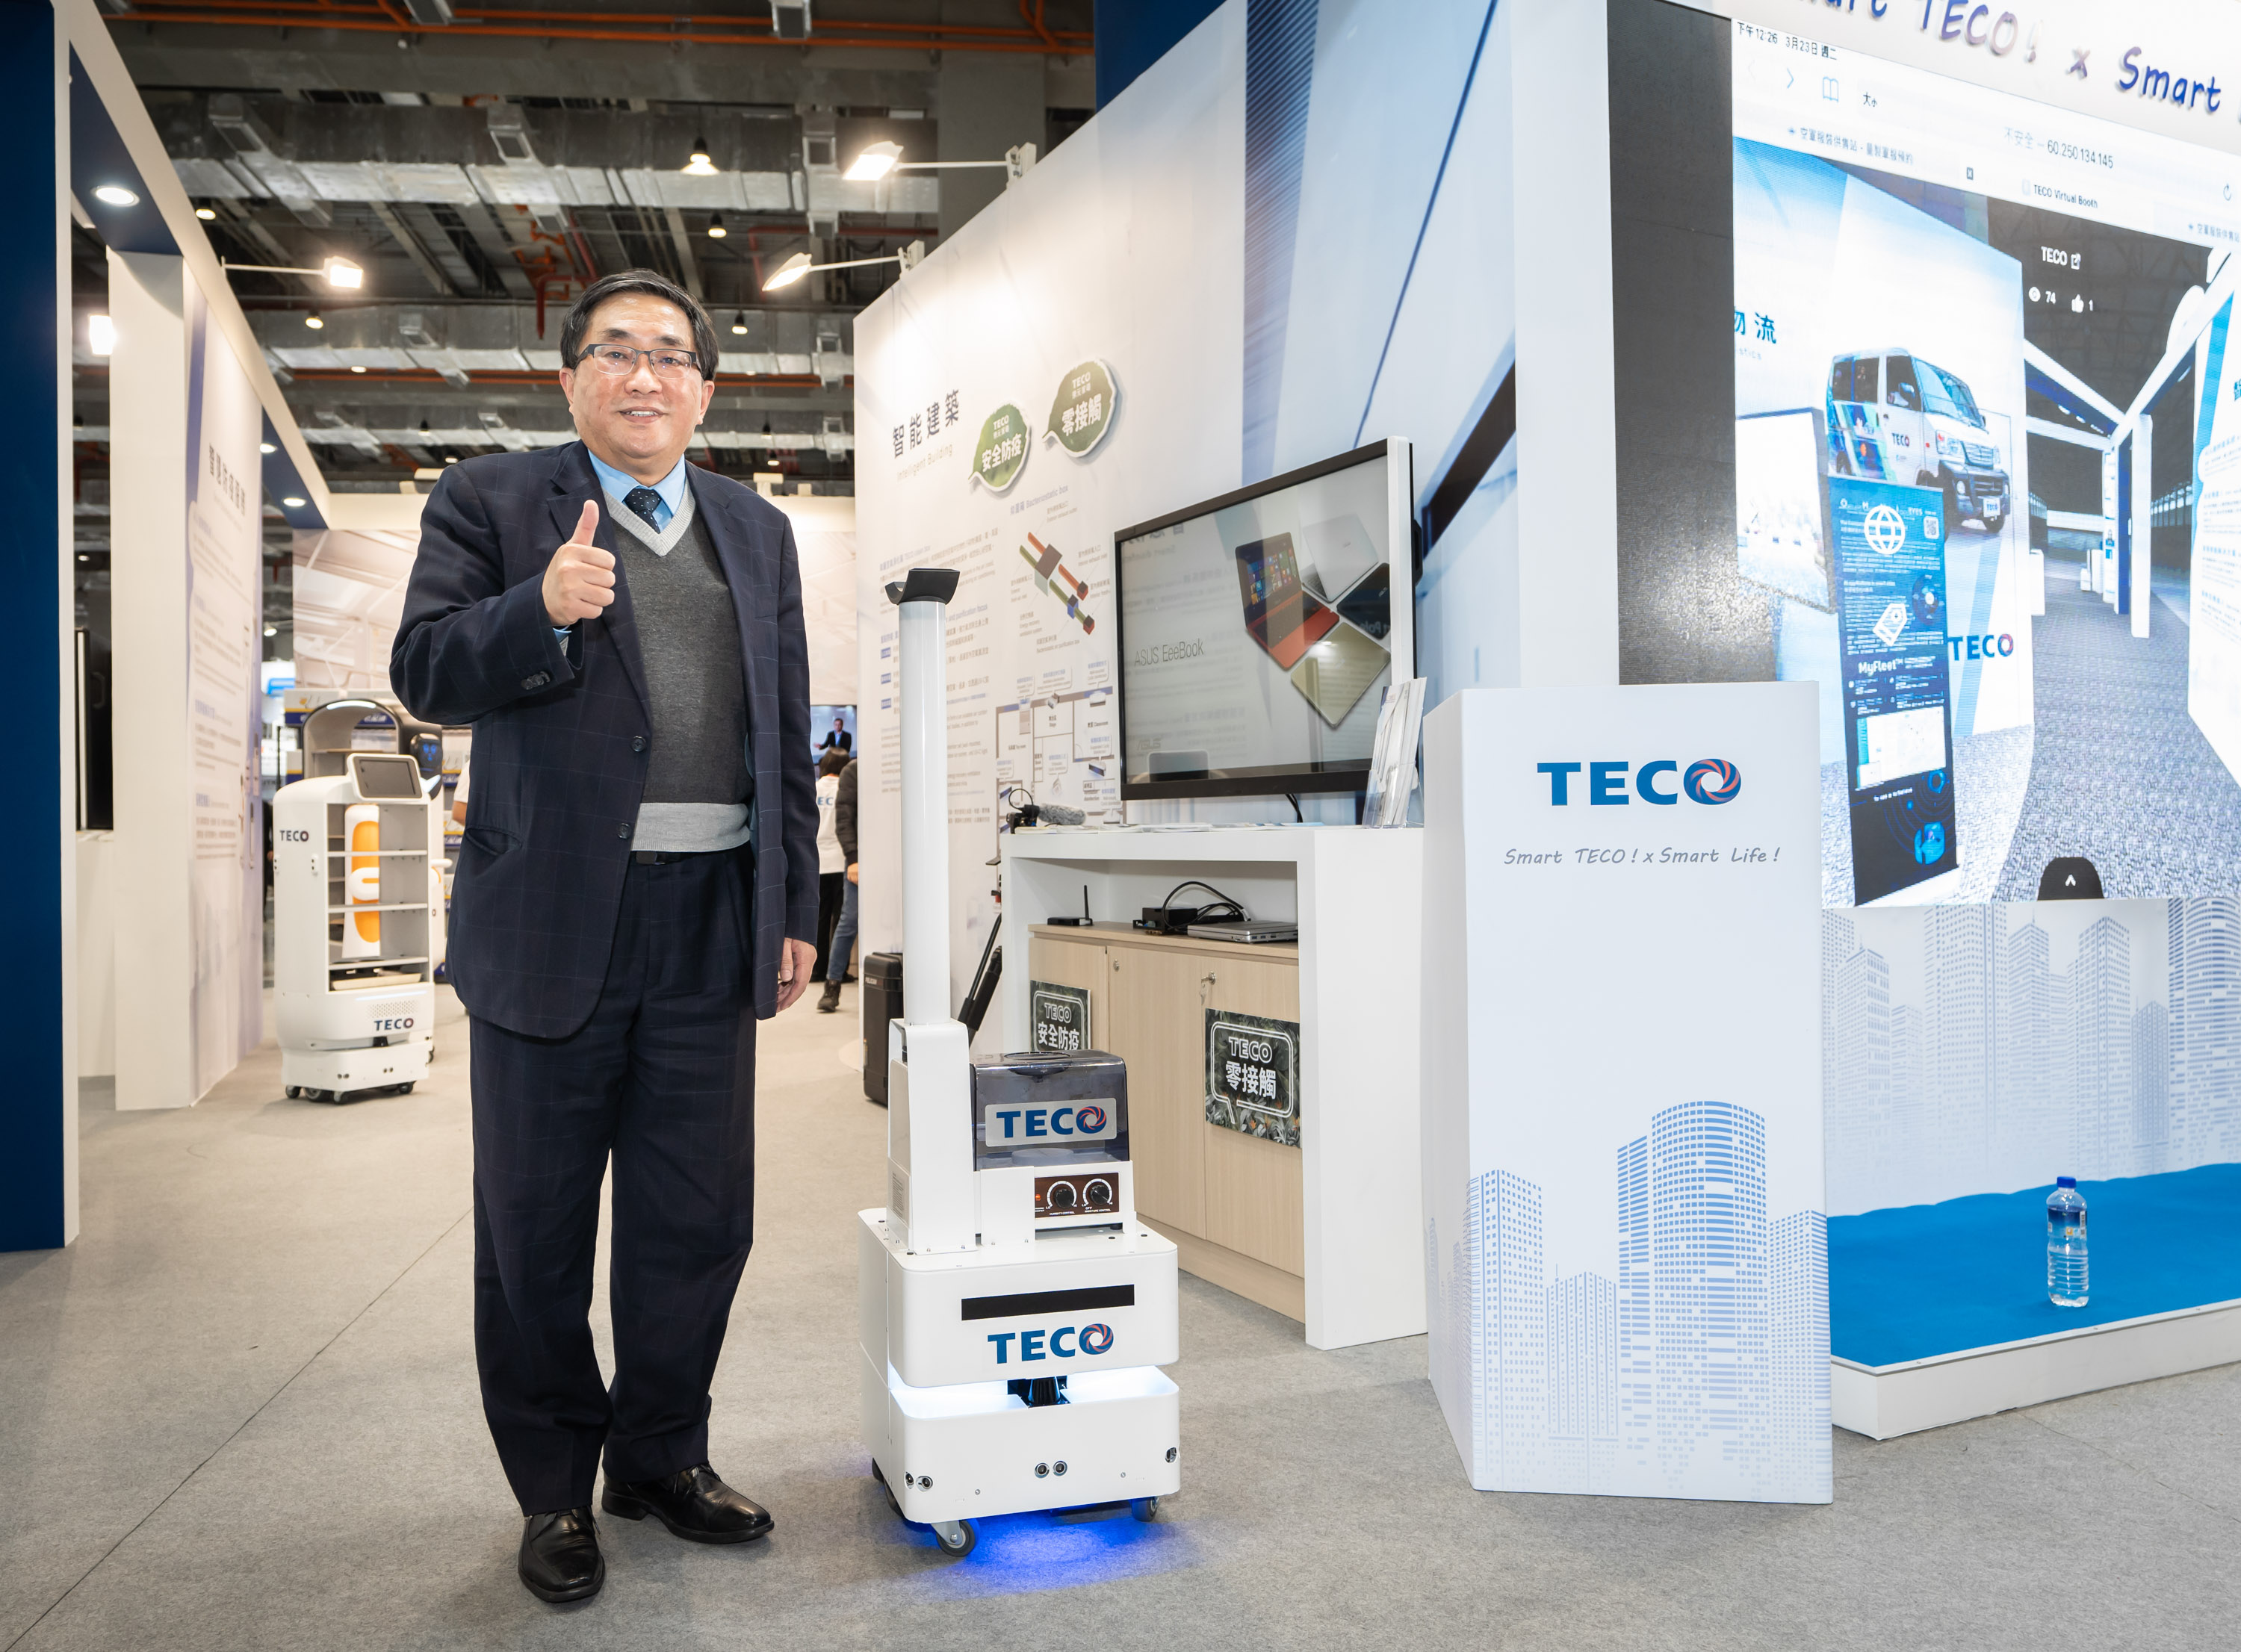 TECO Exhibits AI and IoT Solutions at 2021 Smart City Expo